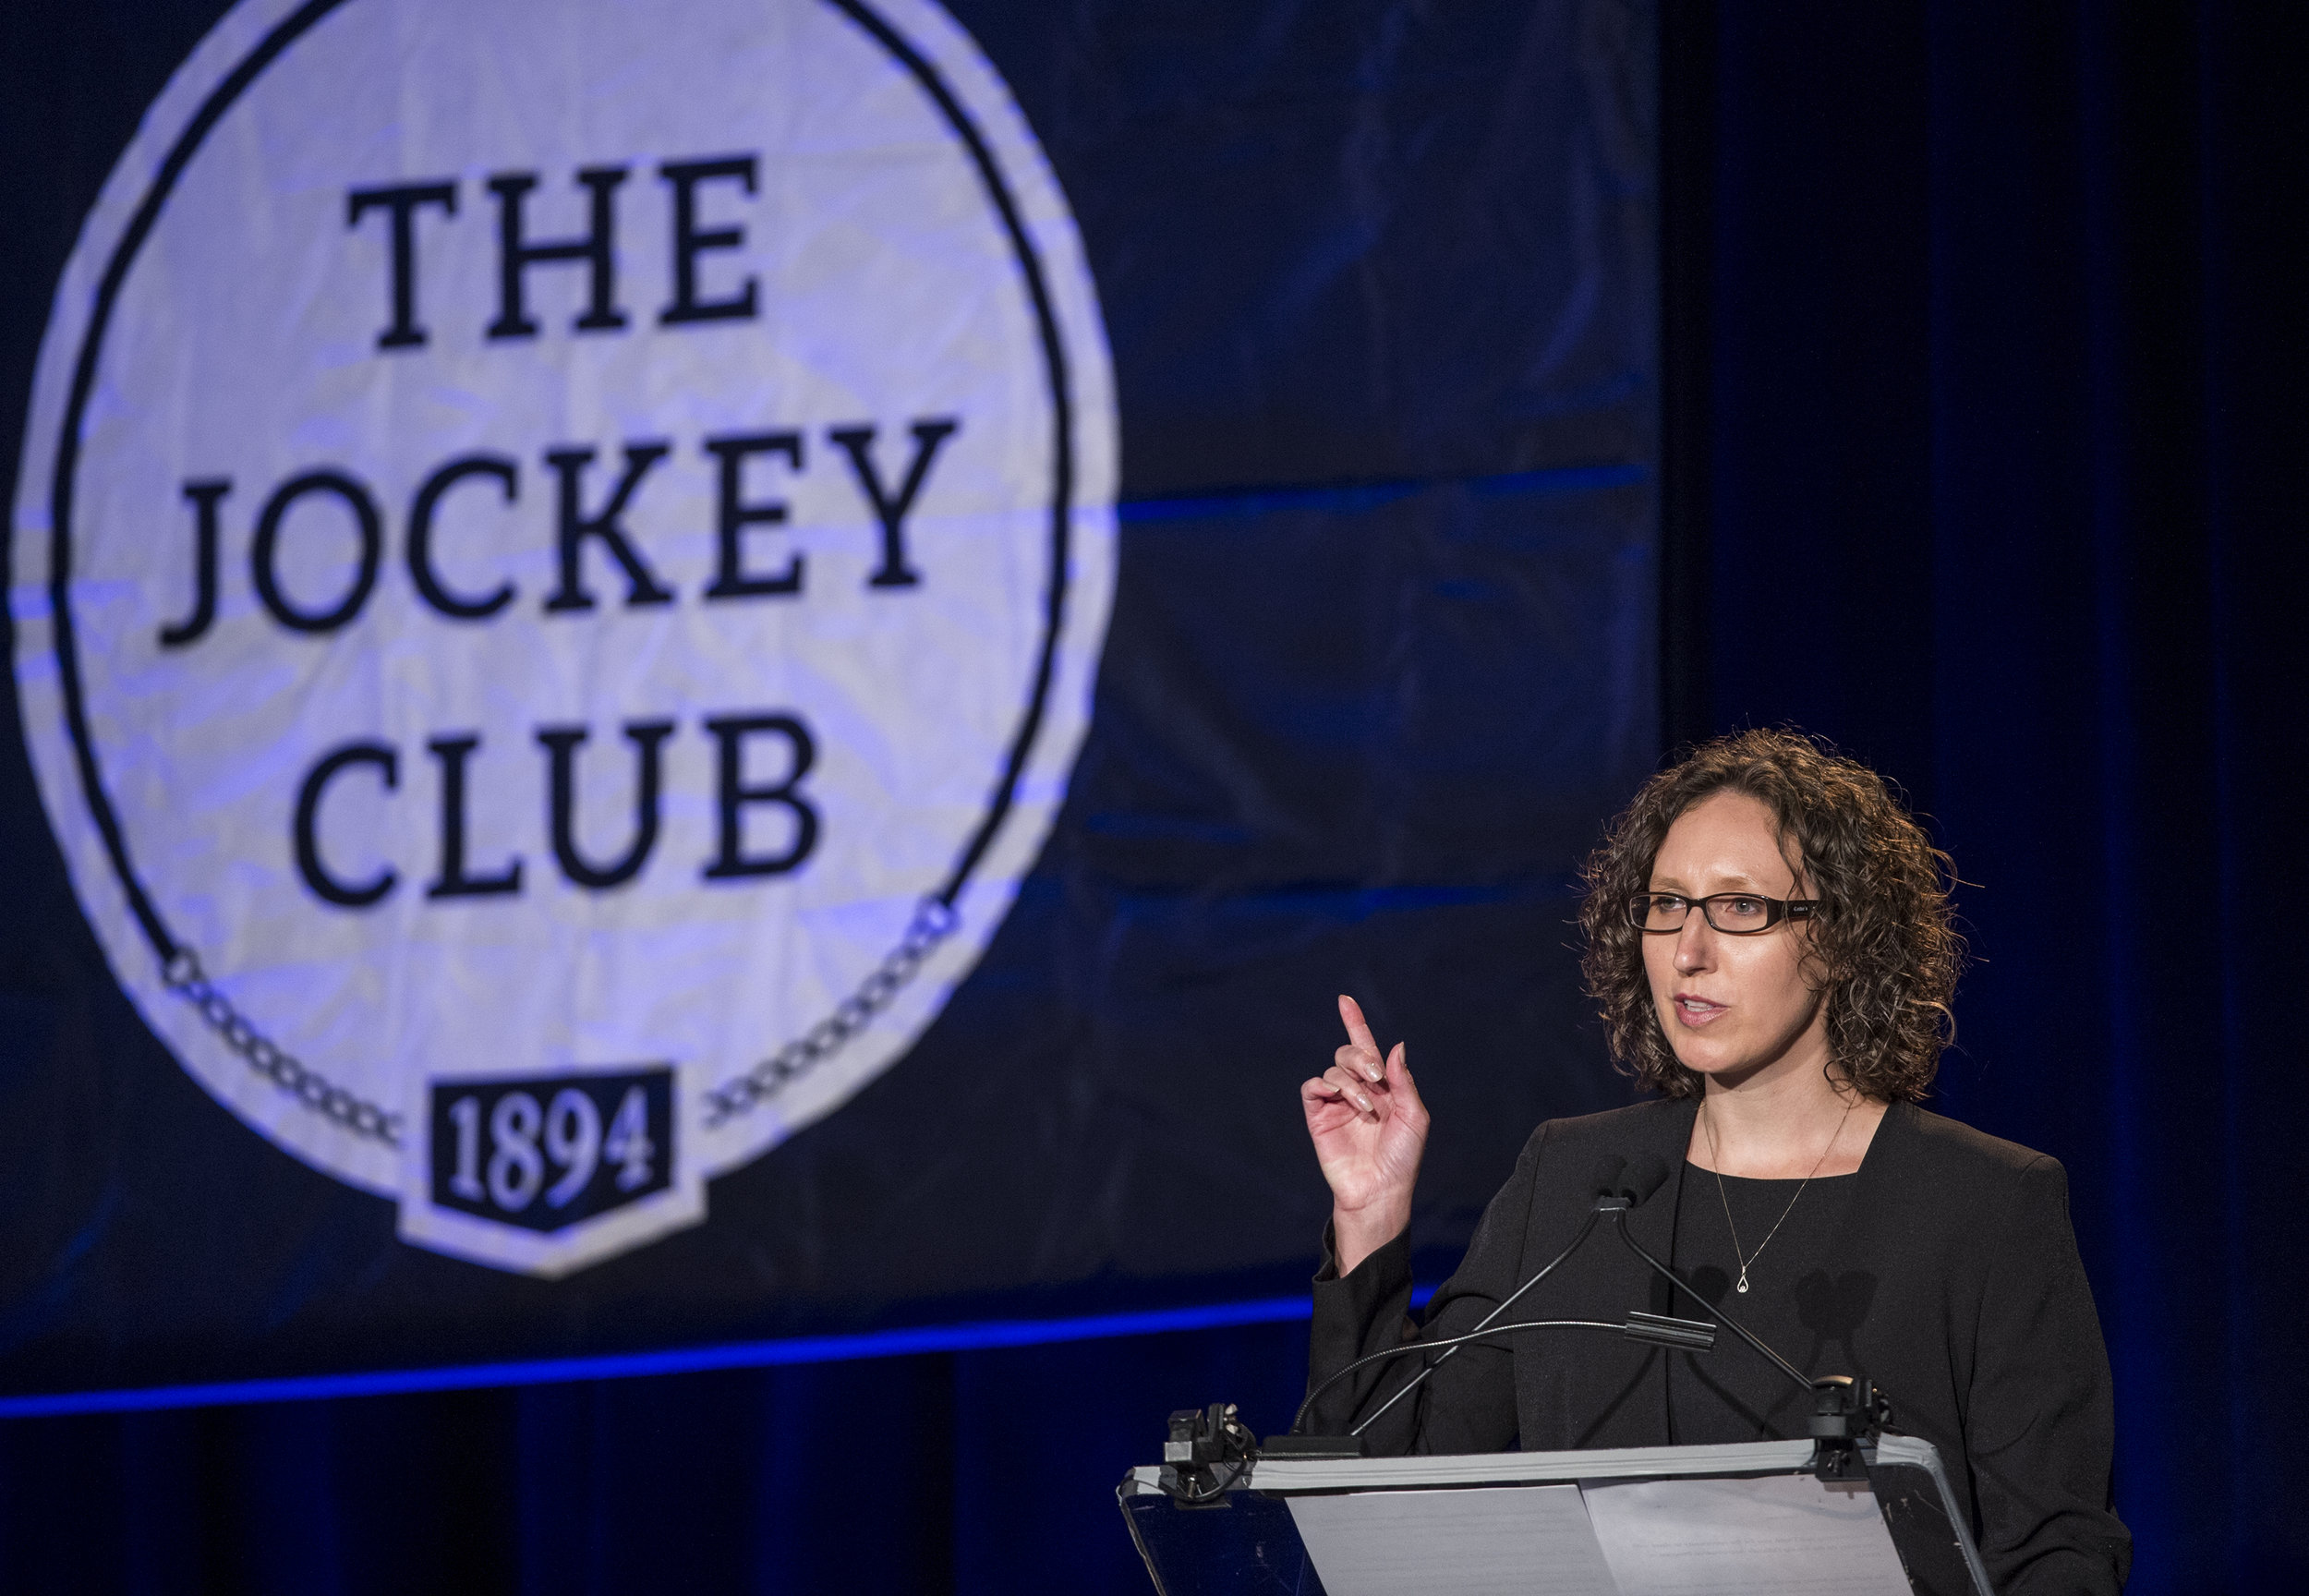 Cathy O'Meara speaks at the Jockey Club Roundtable 2017 at the Gideon Putnam Hotel August 13, 2017 in Saratoga Springs, N.Y.